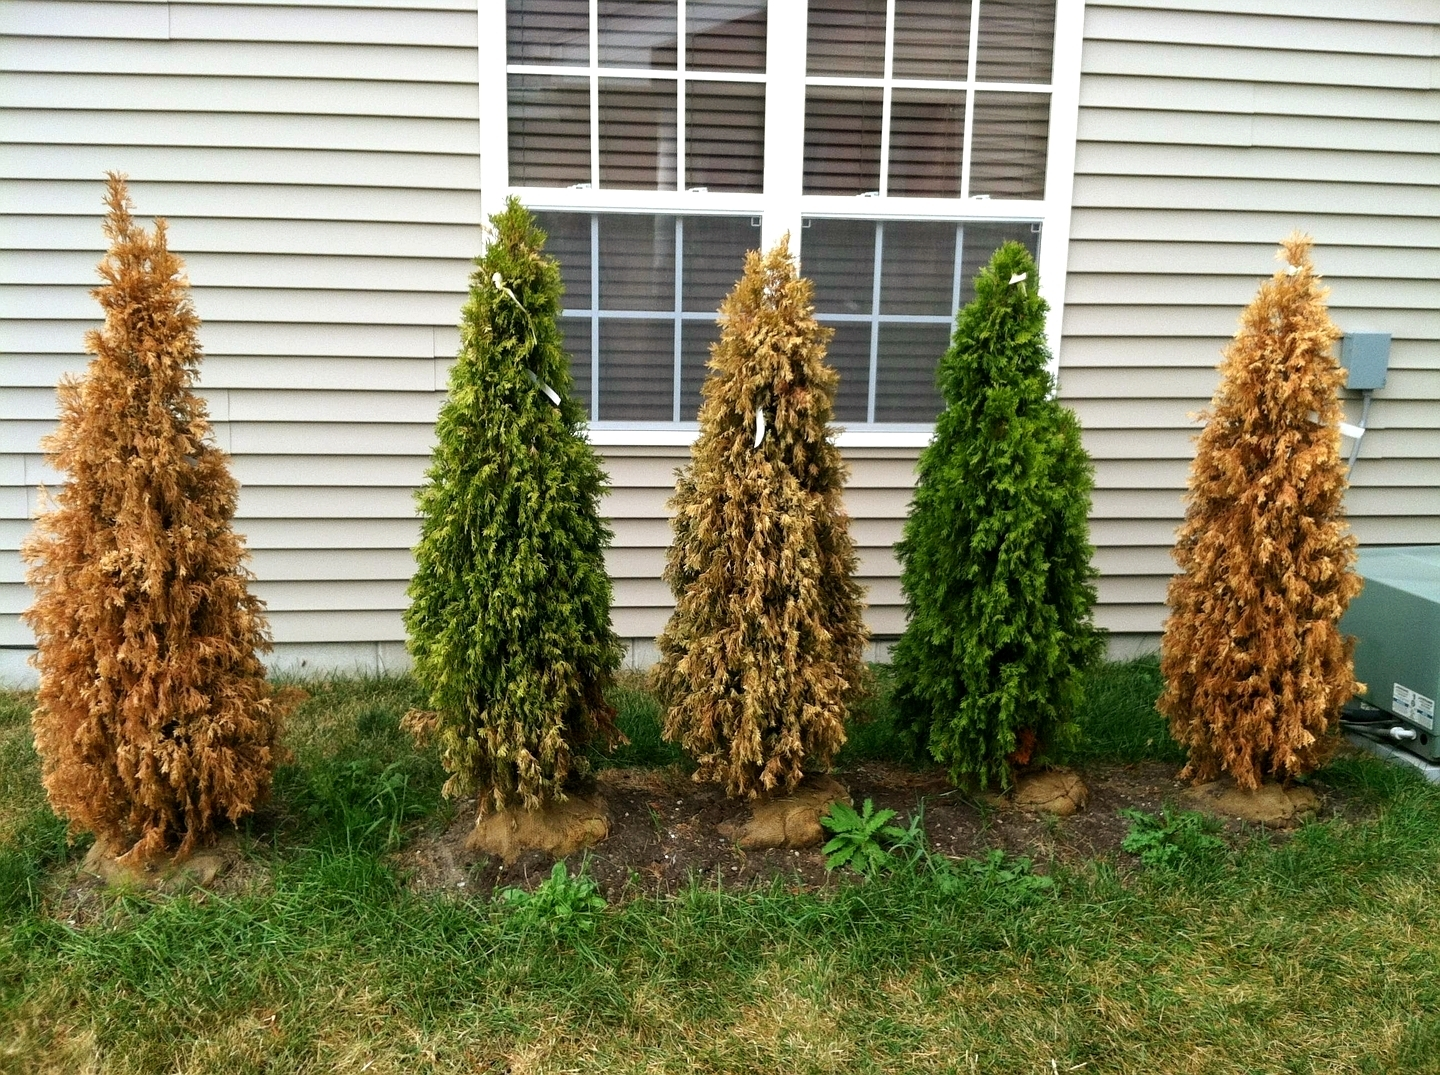 Dying arborvitaes